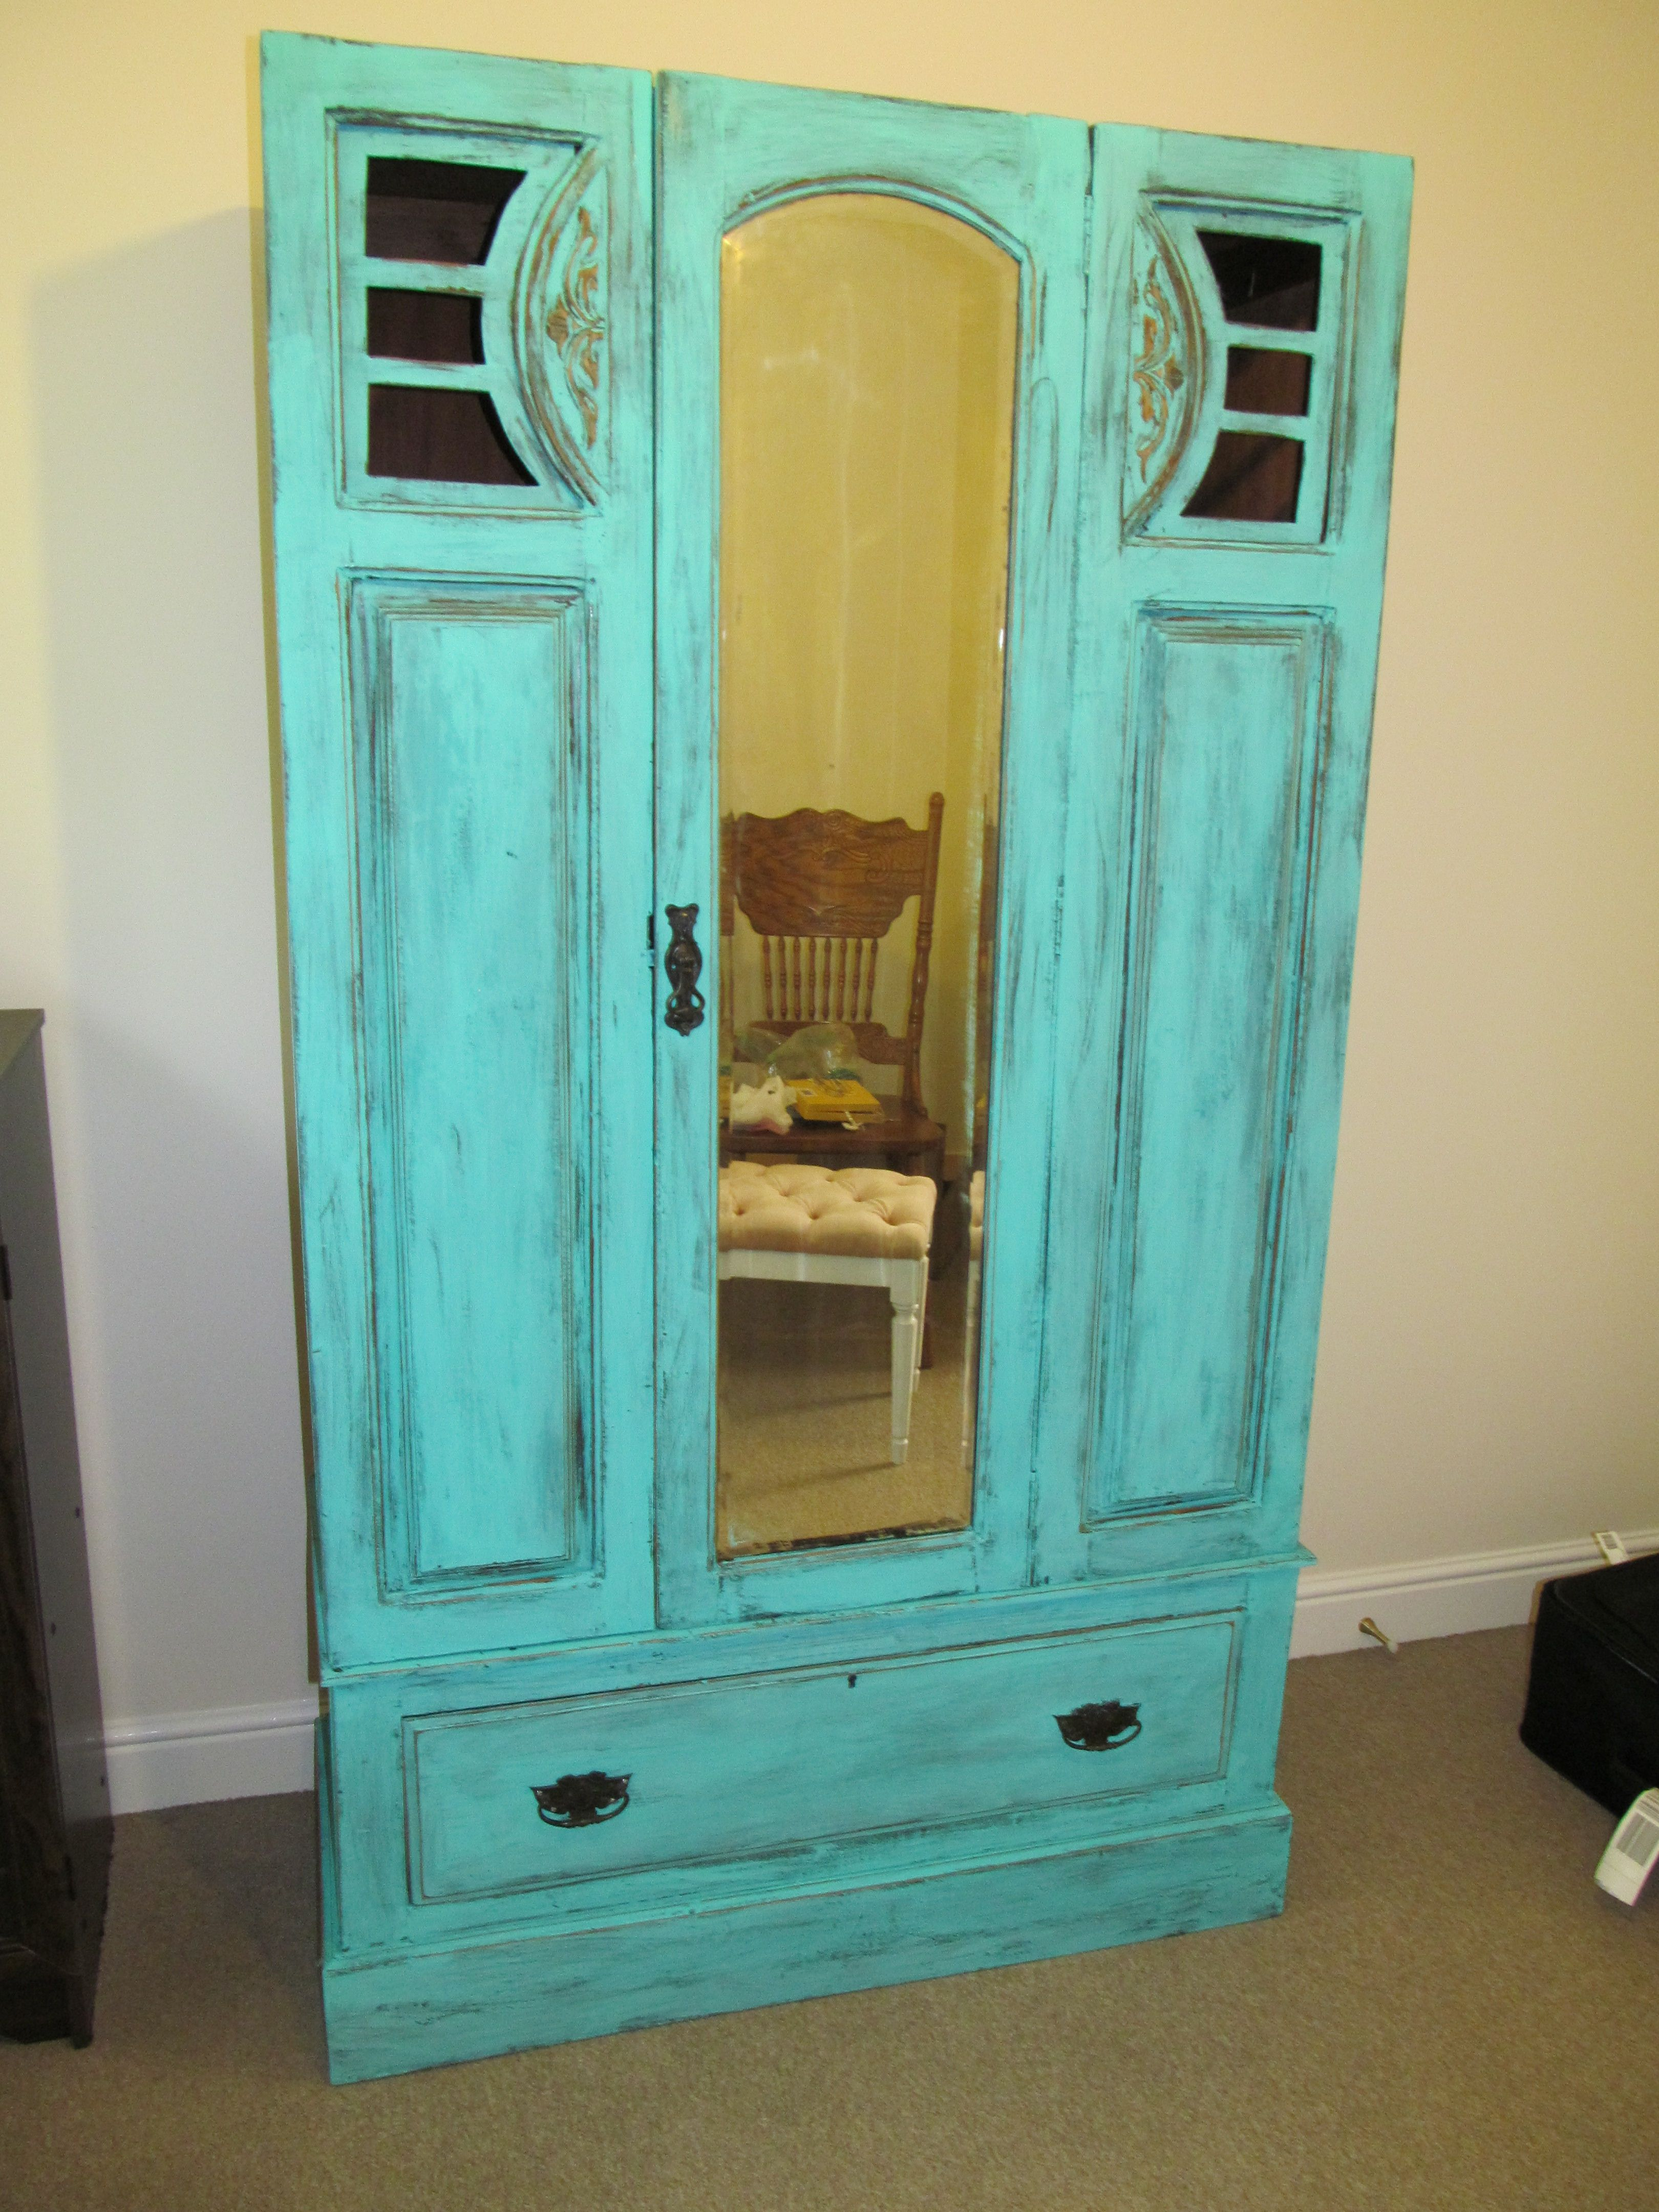 I just finished this old farm wardrobe today! I love it (: